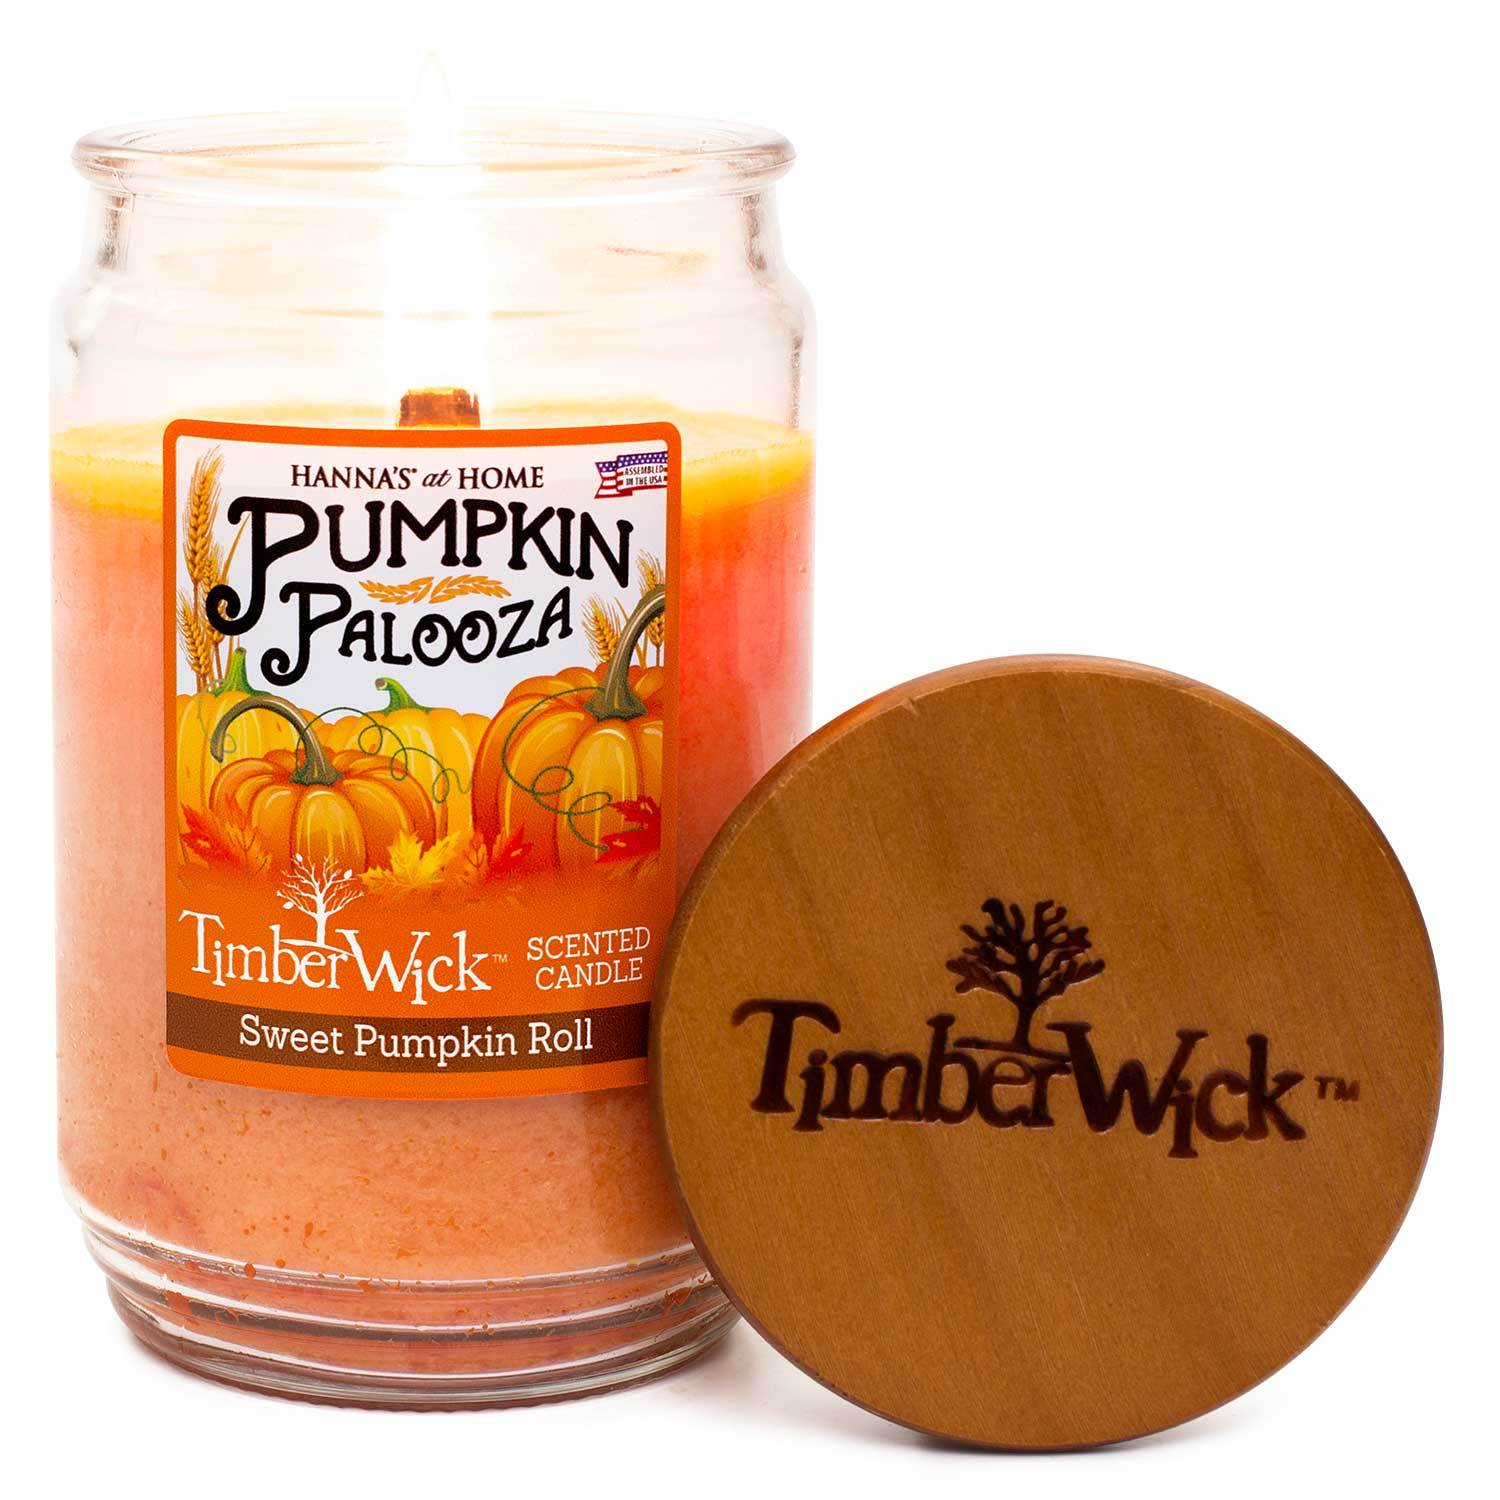 TimberWick Sweet Pumpkin Roll Mottled Scented Wax Candle Timberwick Candlemart.com $ 7.50